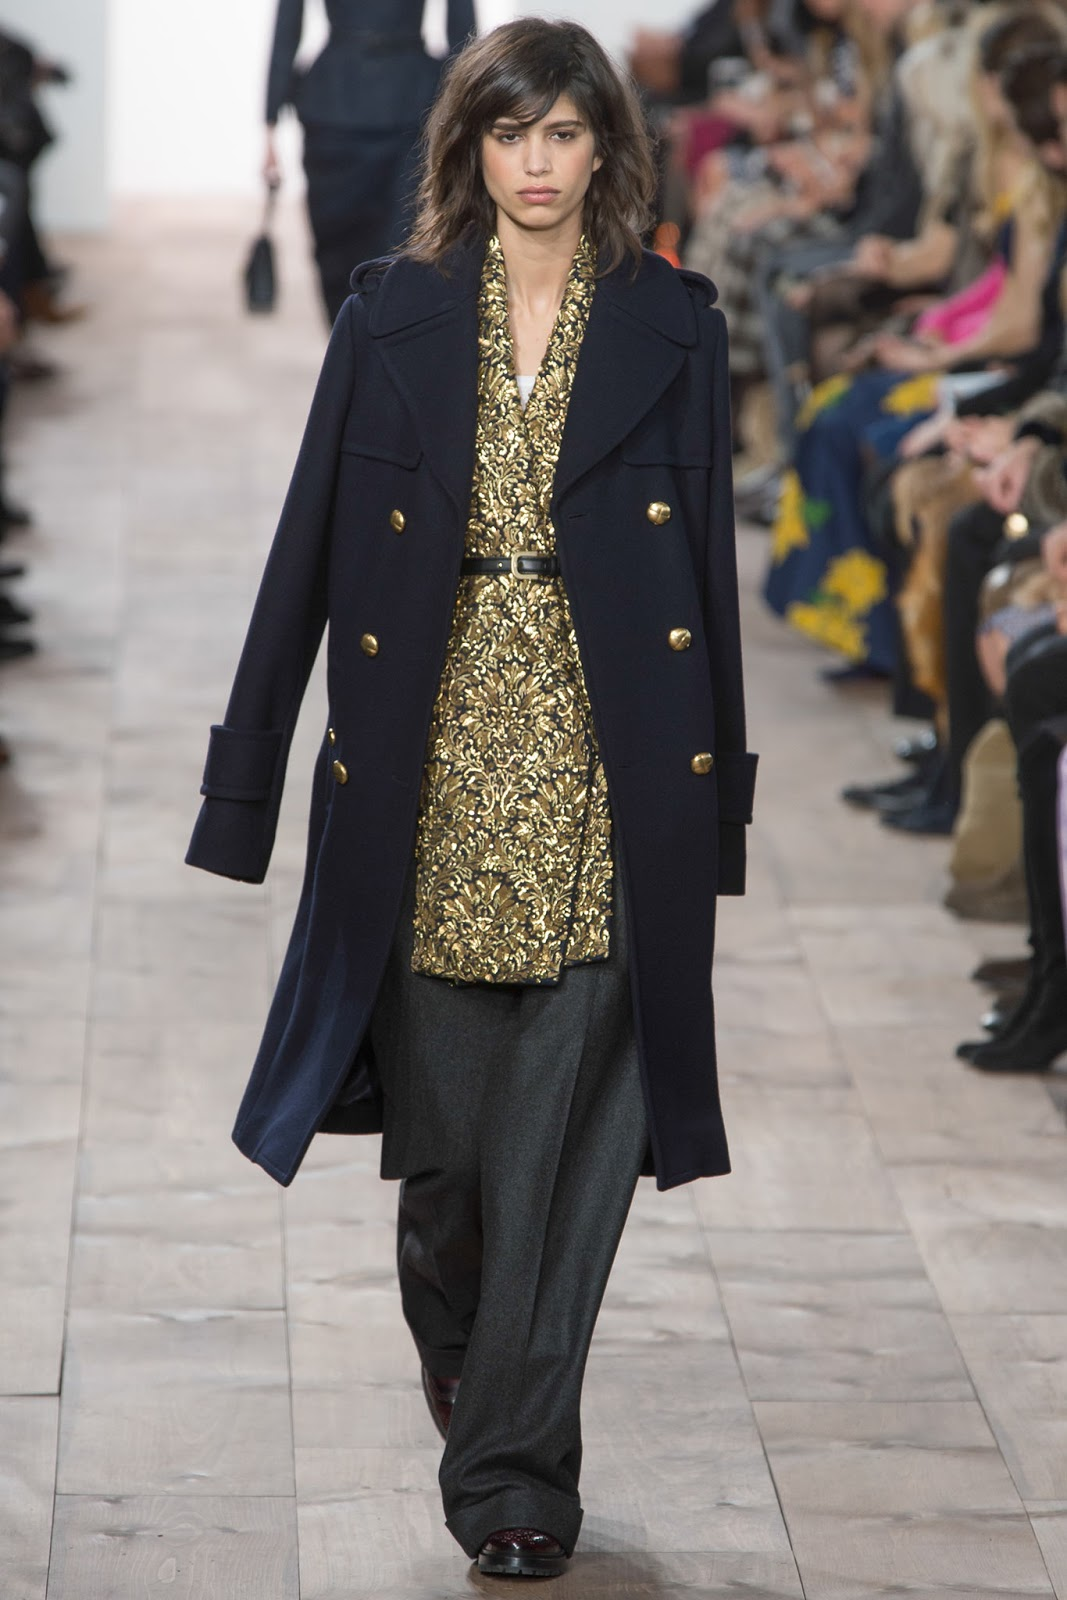 Michael Kors Fall/Winter 2015 collection; review & photos